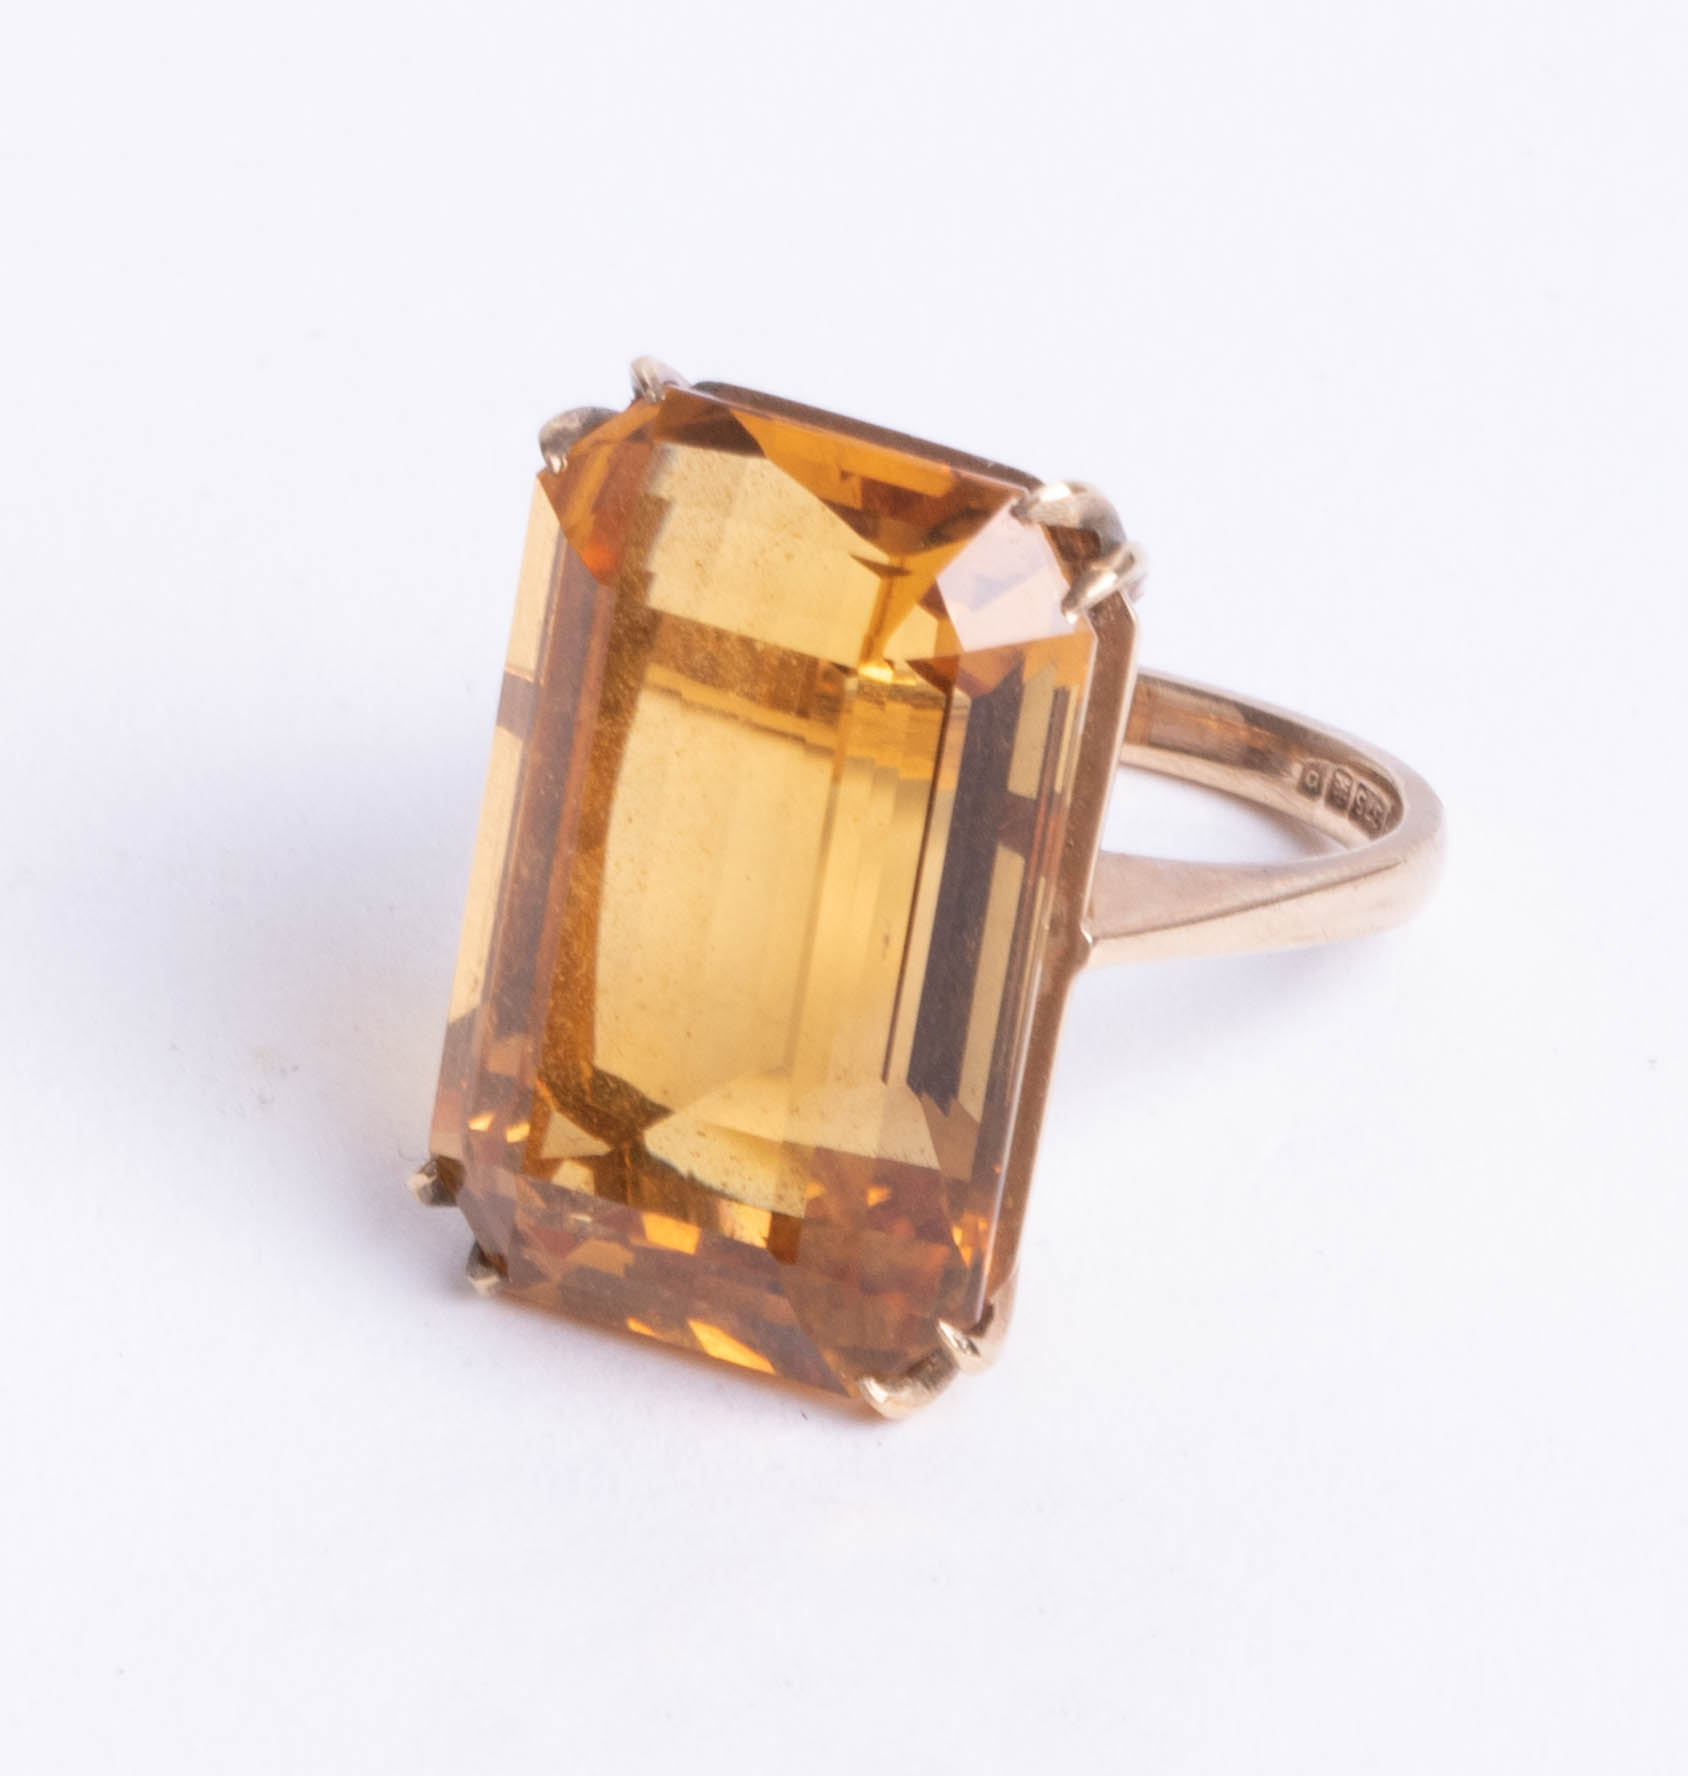 Lot 047 - A 9ct large single stone citrine ring, stone size 22m x 16mm, size N.